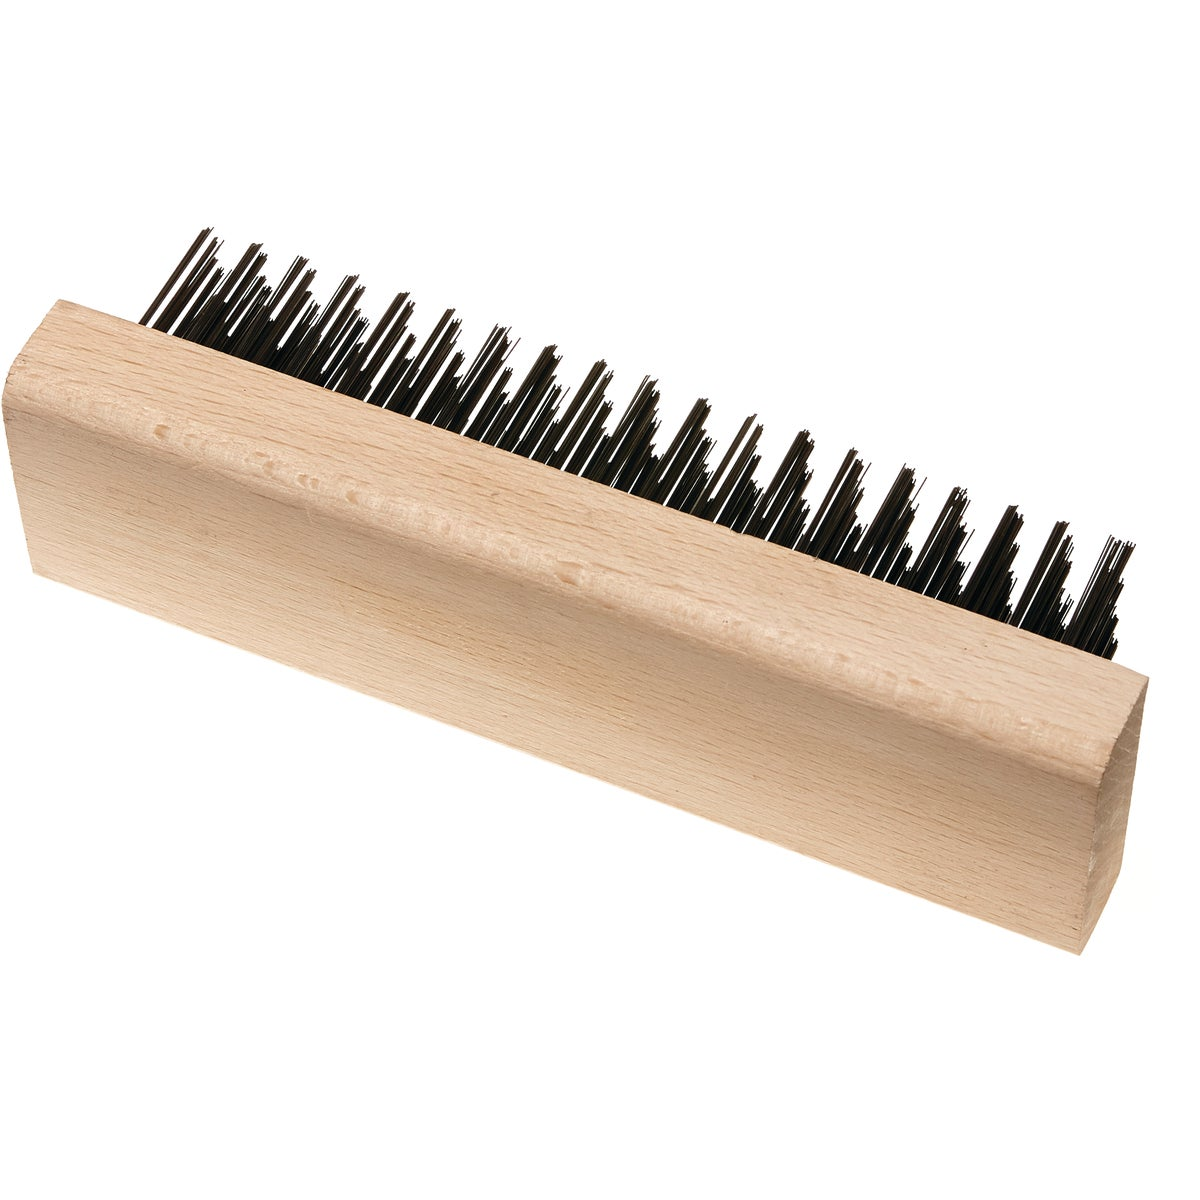 6X16 ROW WIRE BRUSH